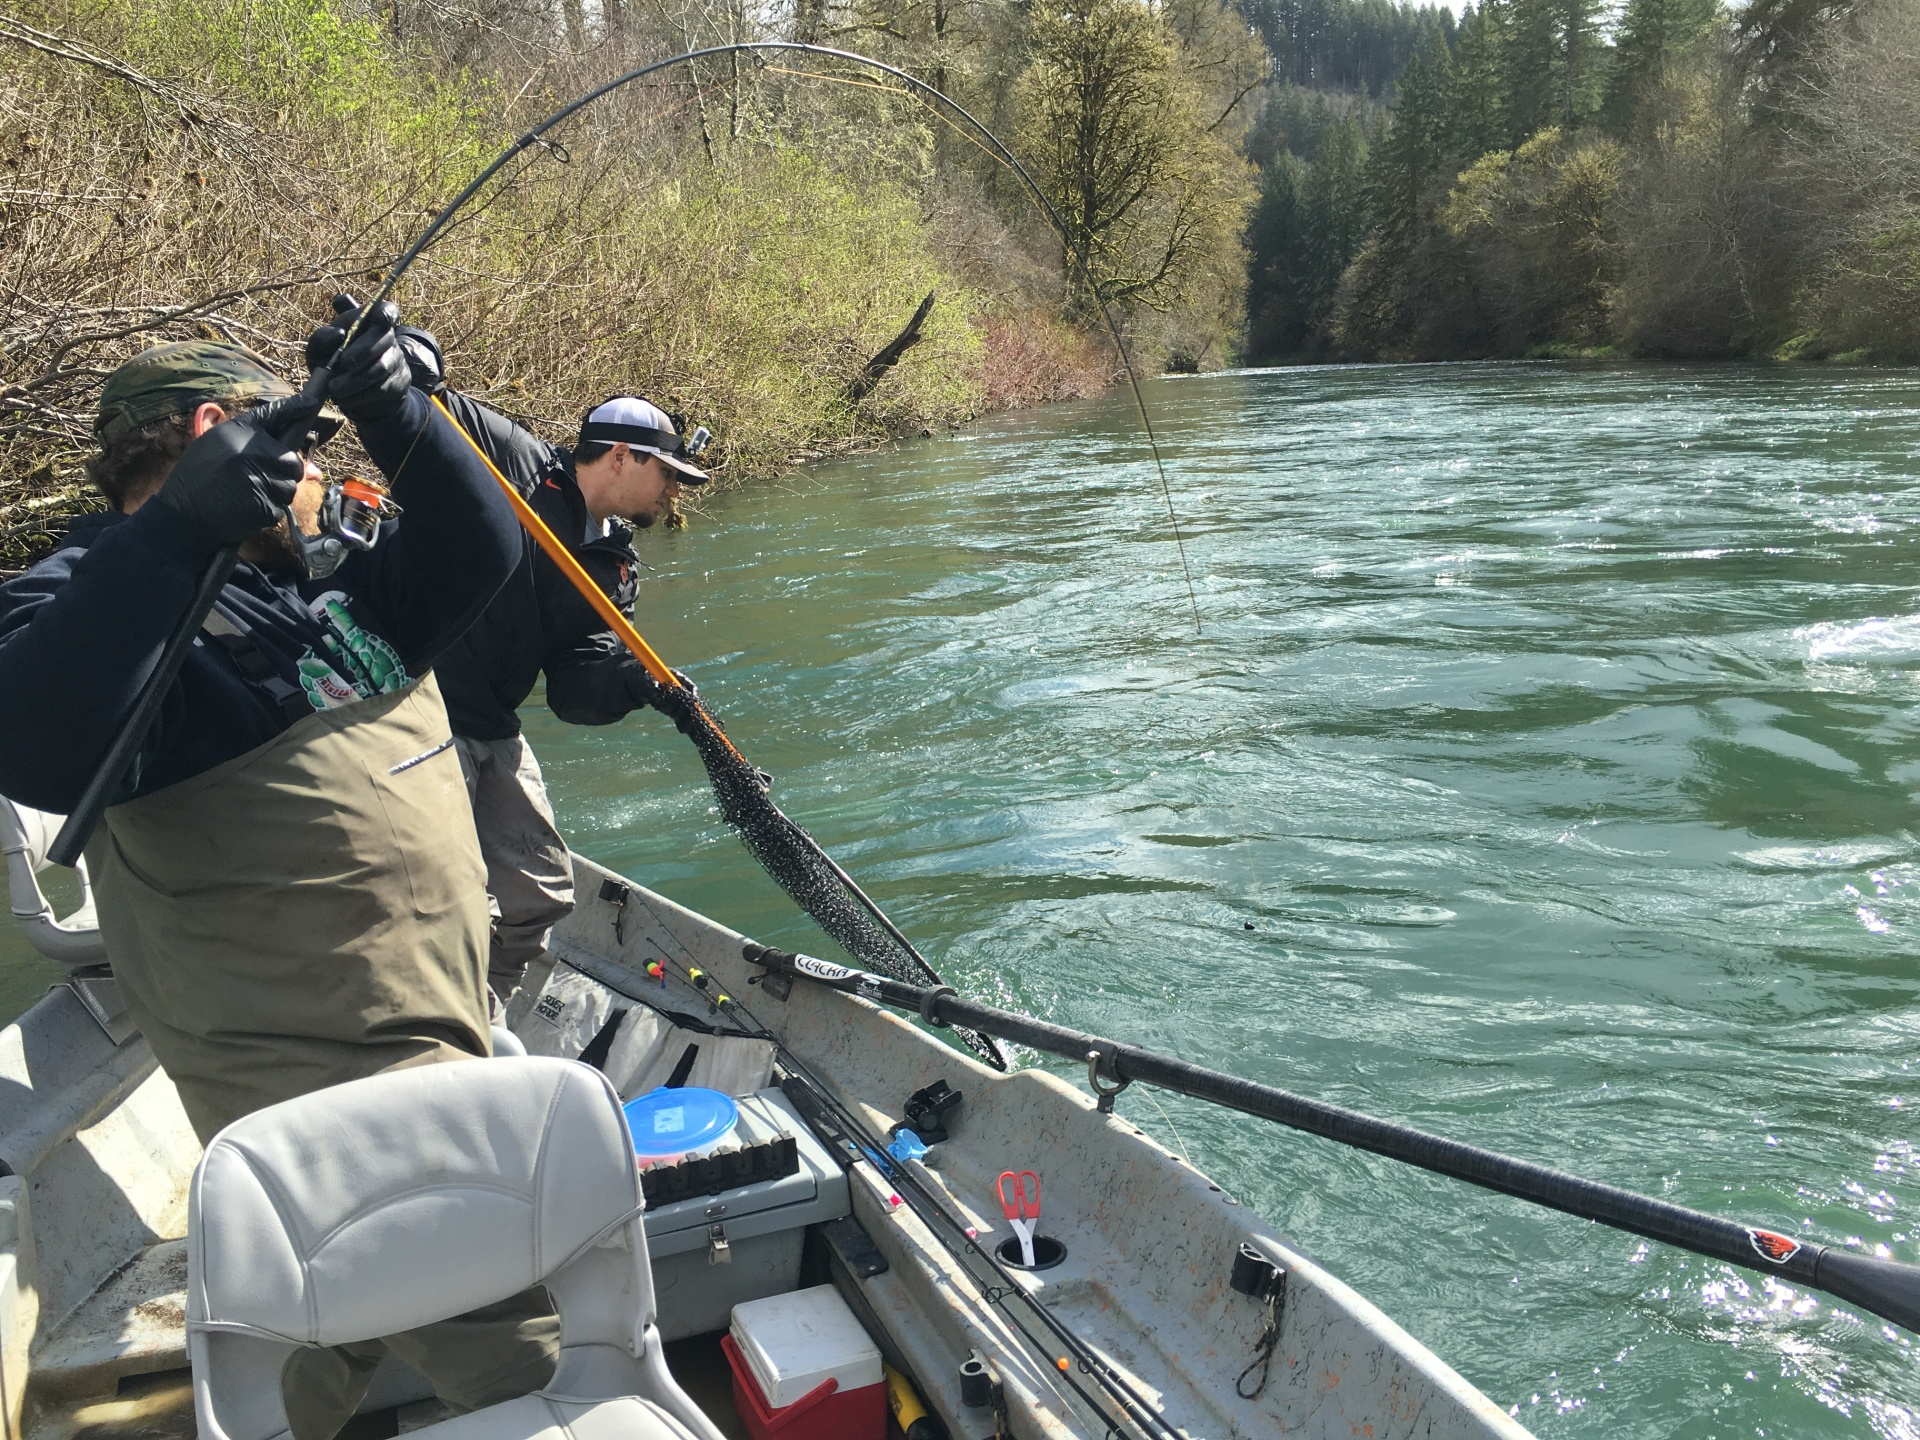 alsea, river, greg hedricks guide service, steelhead, winter steelhead, salmon, fall chinook, spring chinook, coho, king, clackacraft, clackamax, drift boat, rogue rod, summer steelhead